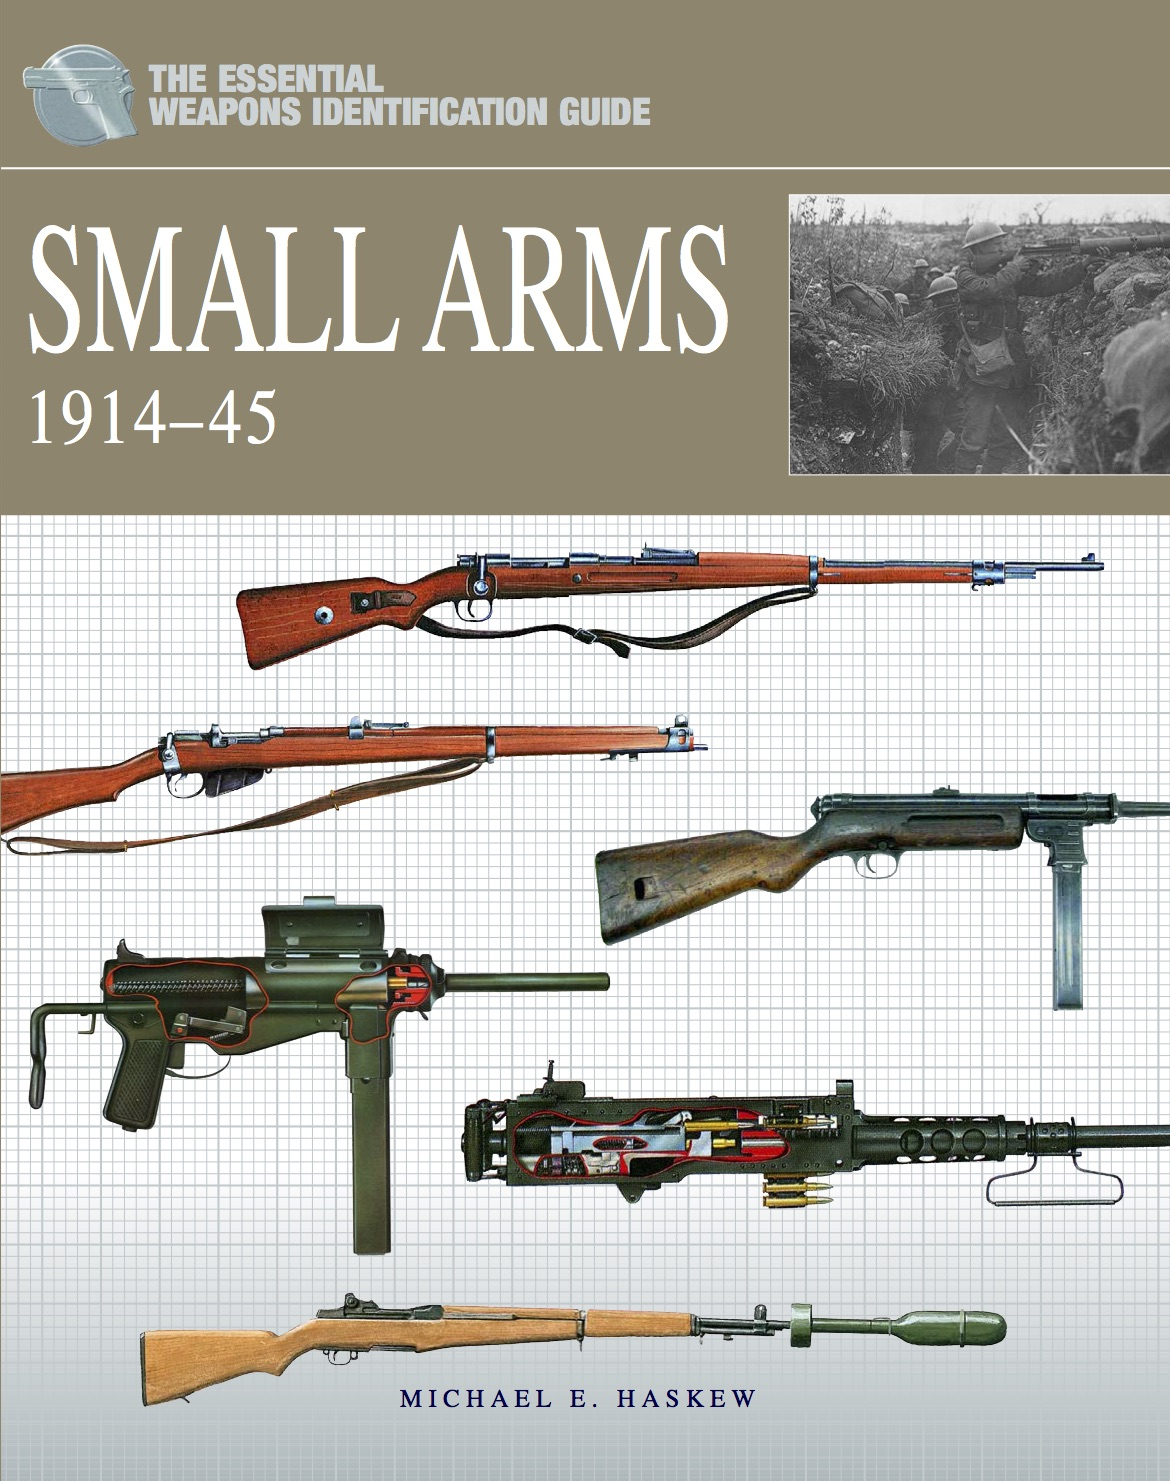 The Essential Weapons Identification Guide: Small Arms 1914-1945